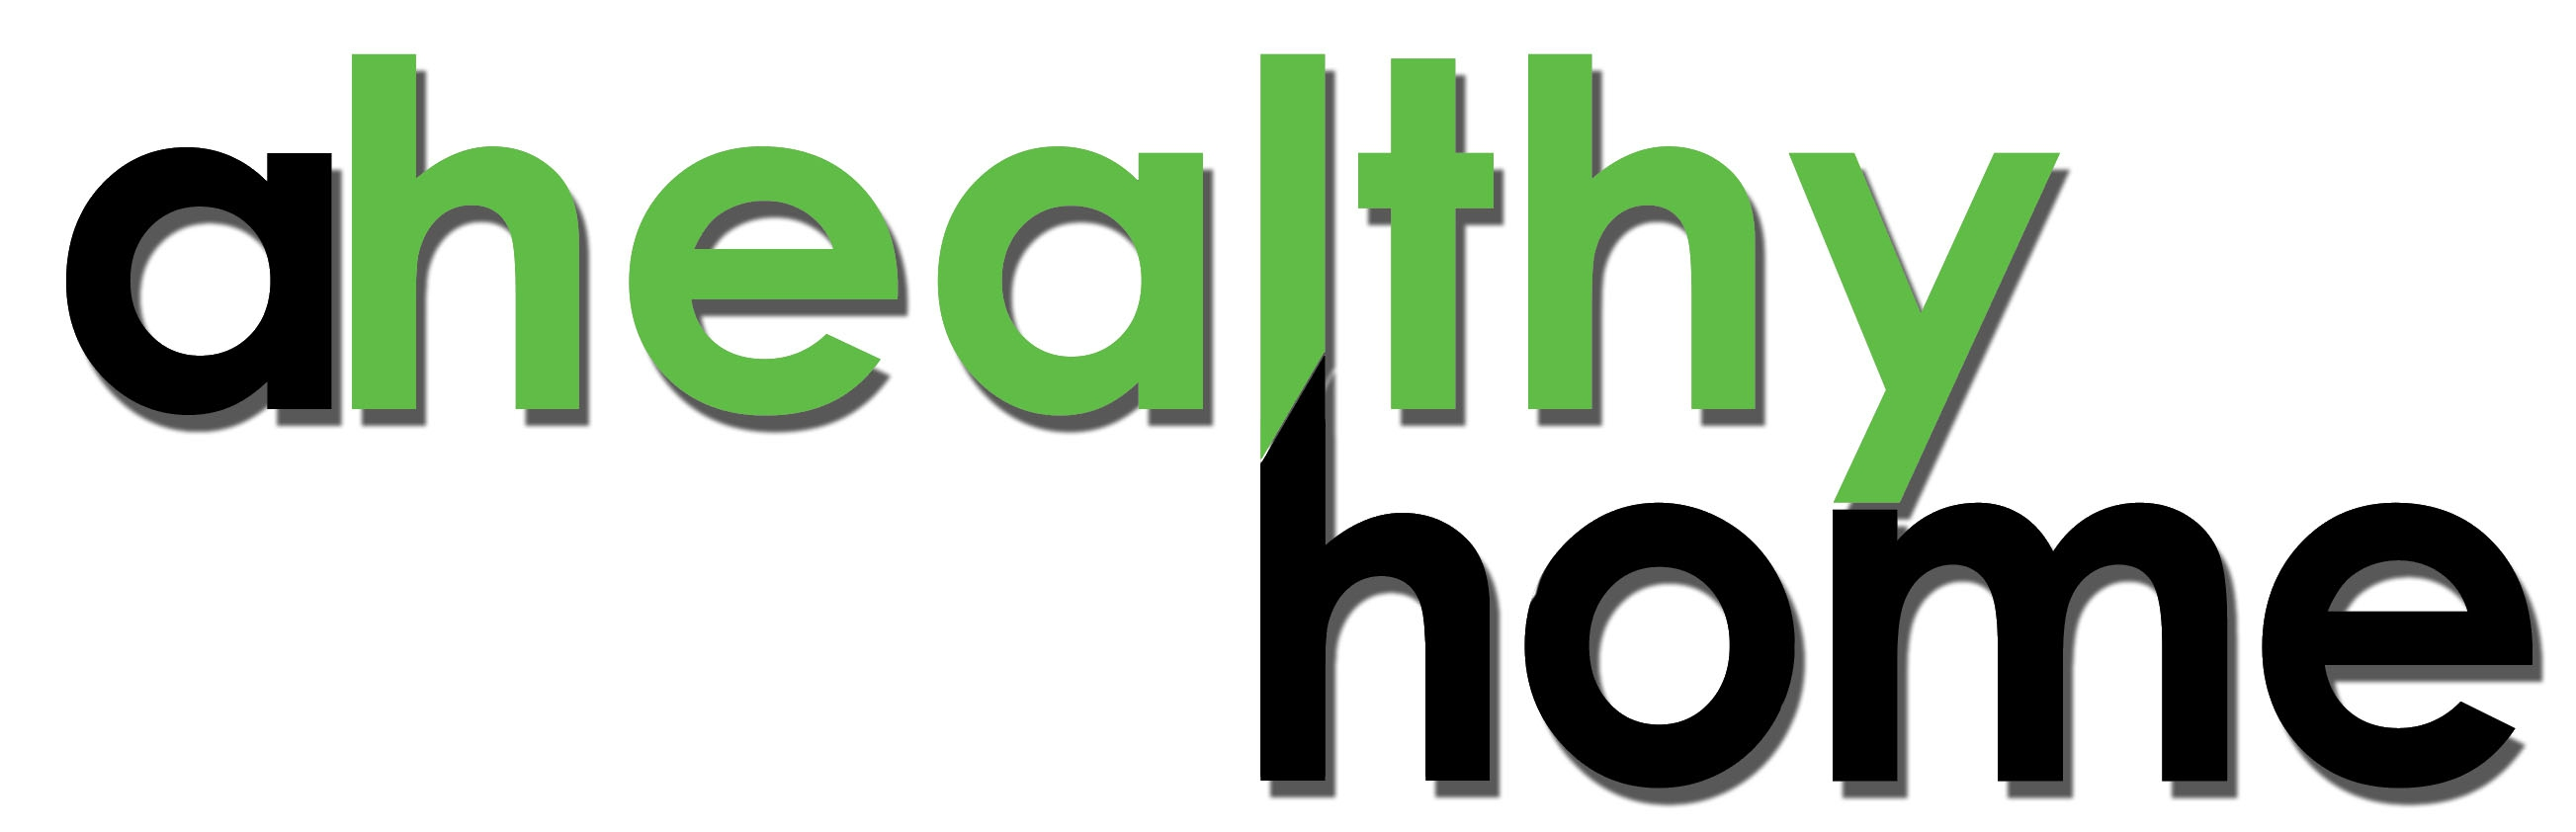 A Heathy Home | Cashiers | Highlands